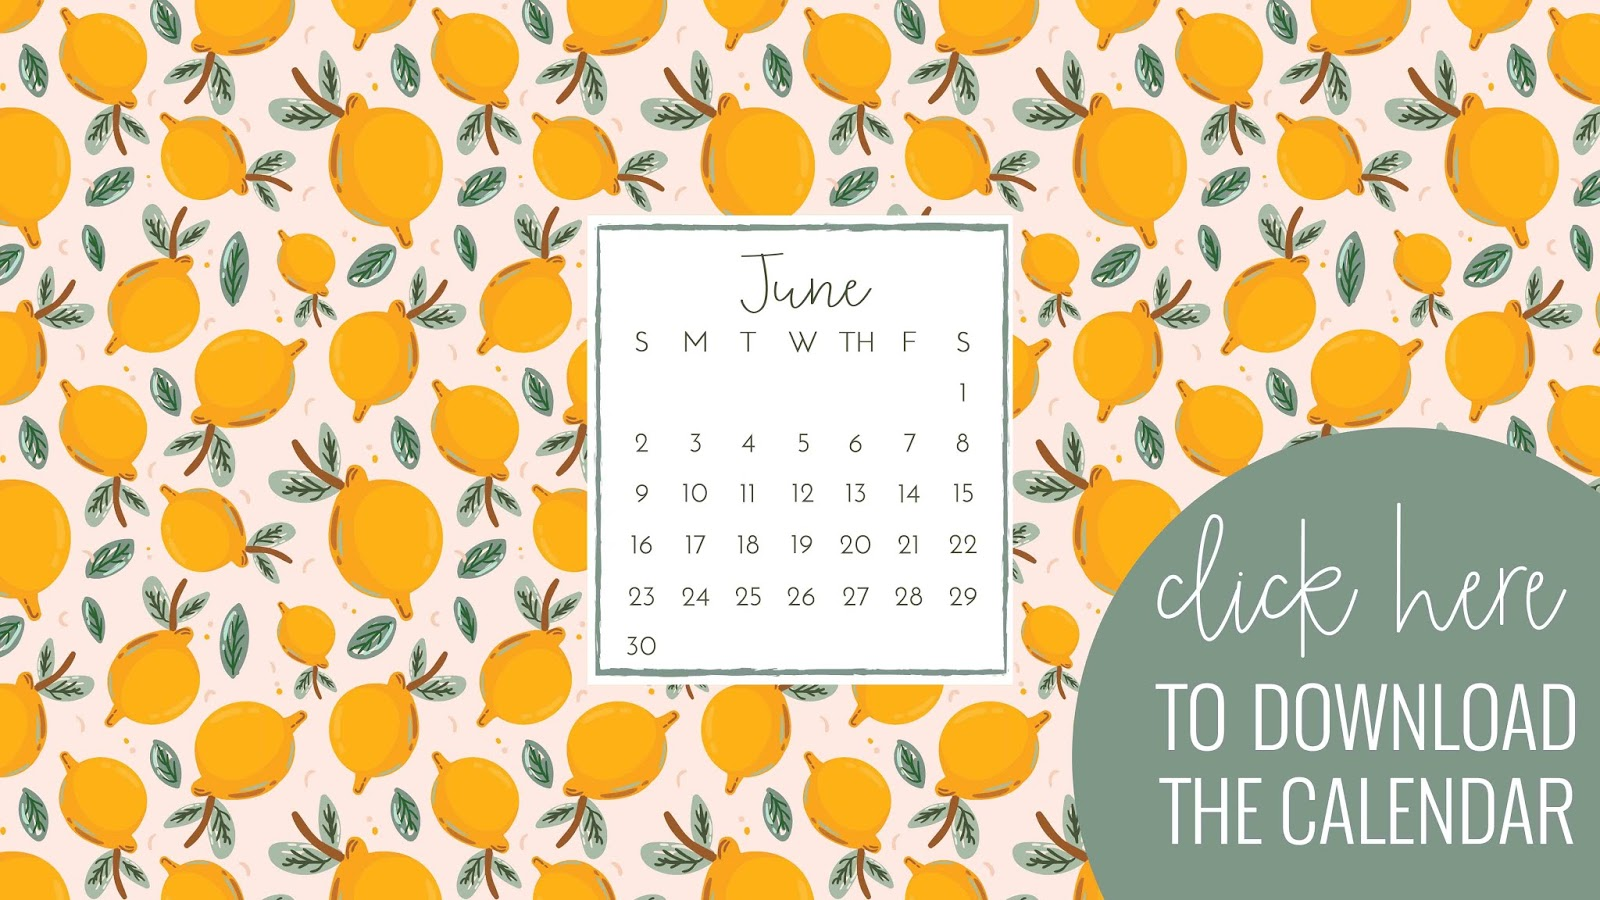 Don't miss the matching iPhone backgrounds.  You can grab the calendar background here and the plain background here.